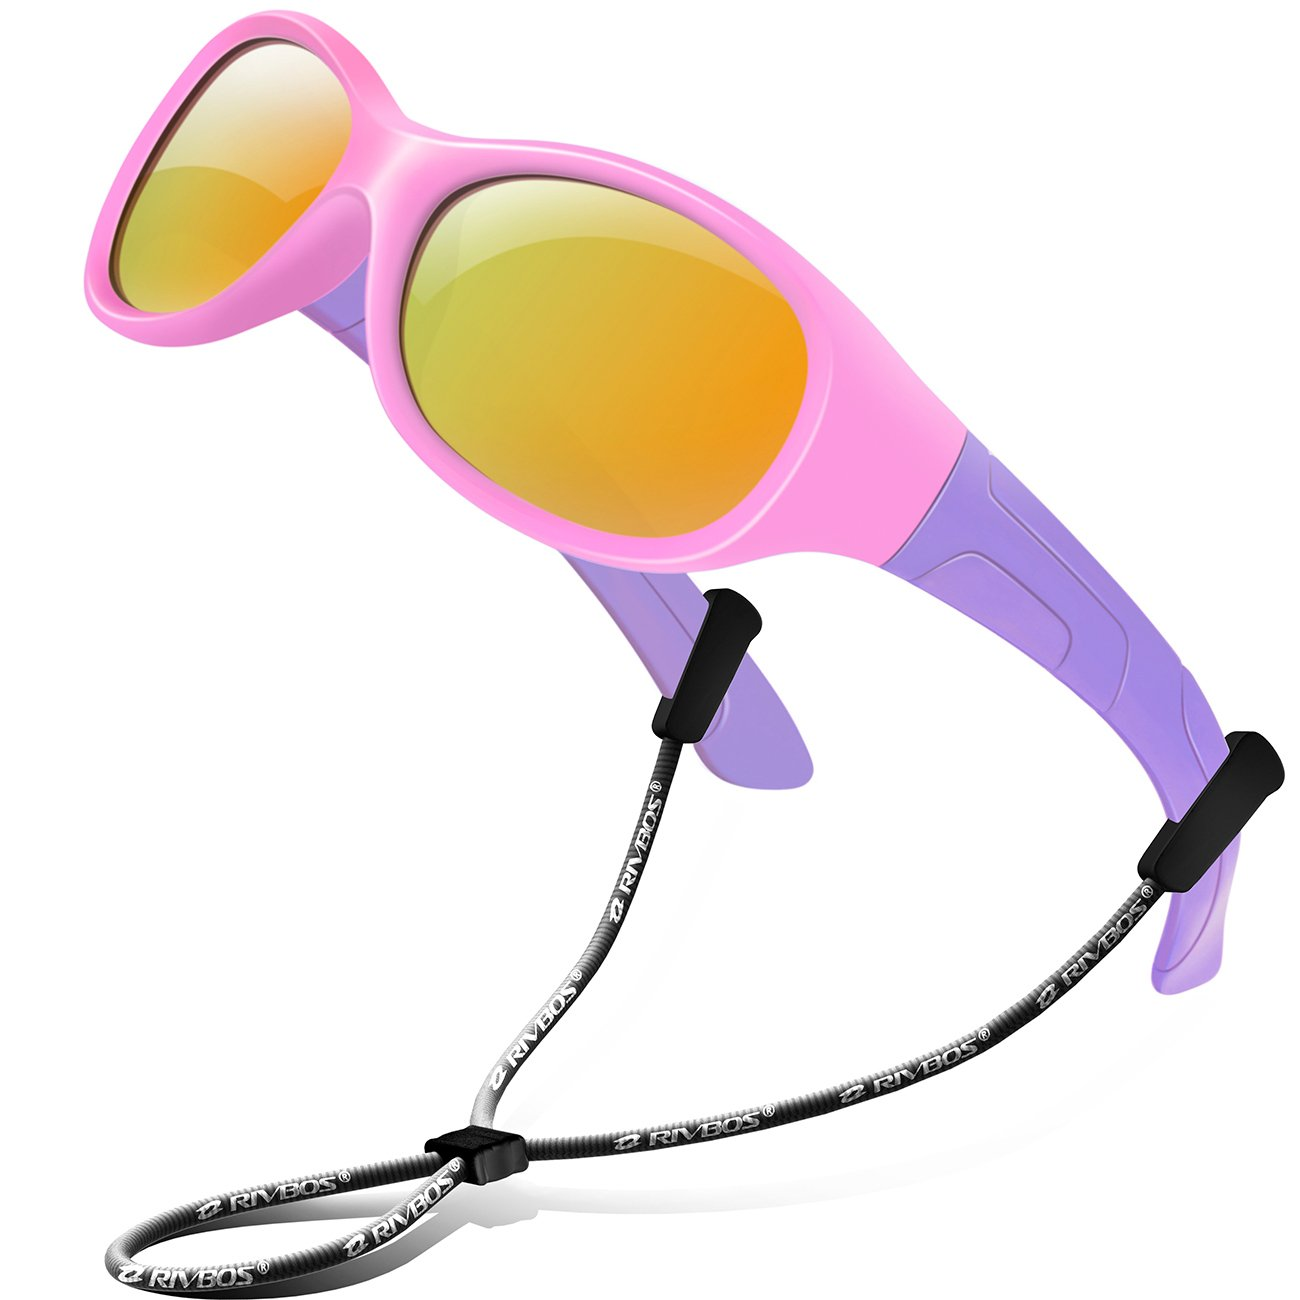 RIVBOS Rubber Kids Polarized Sunglasses With Strap Glasses Shades for Boys Girls Baby and Children Age 3-10 RBK003 (Round Pink Coating Lens)